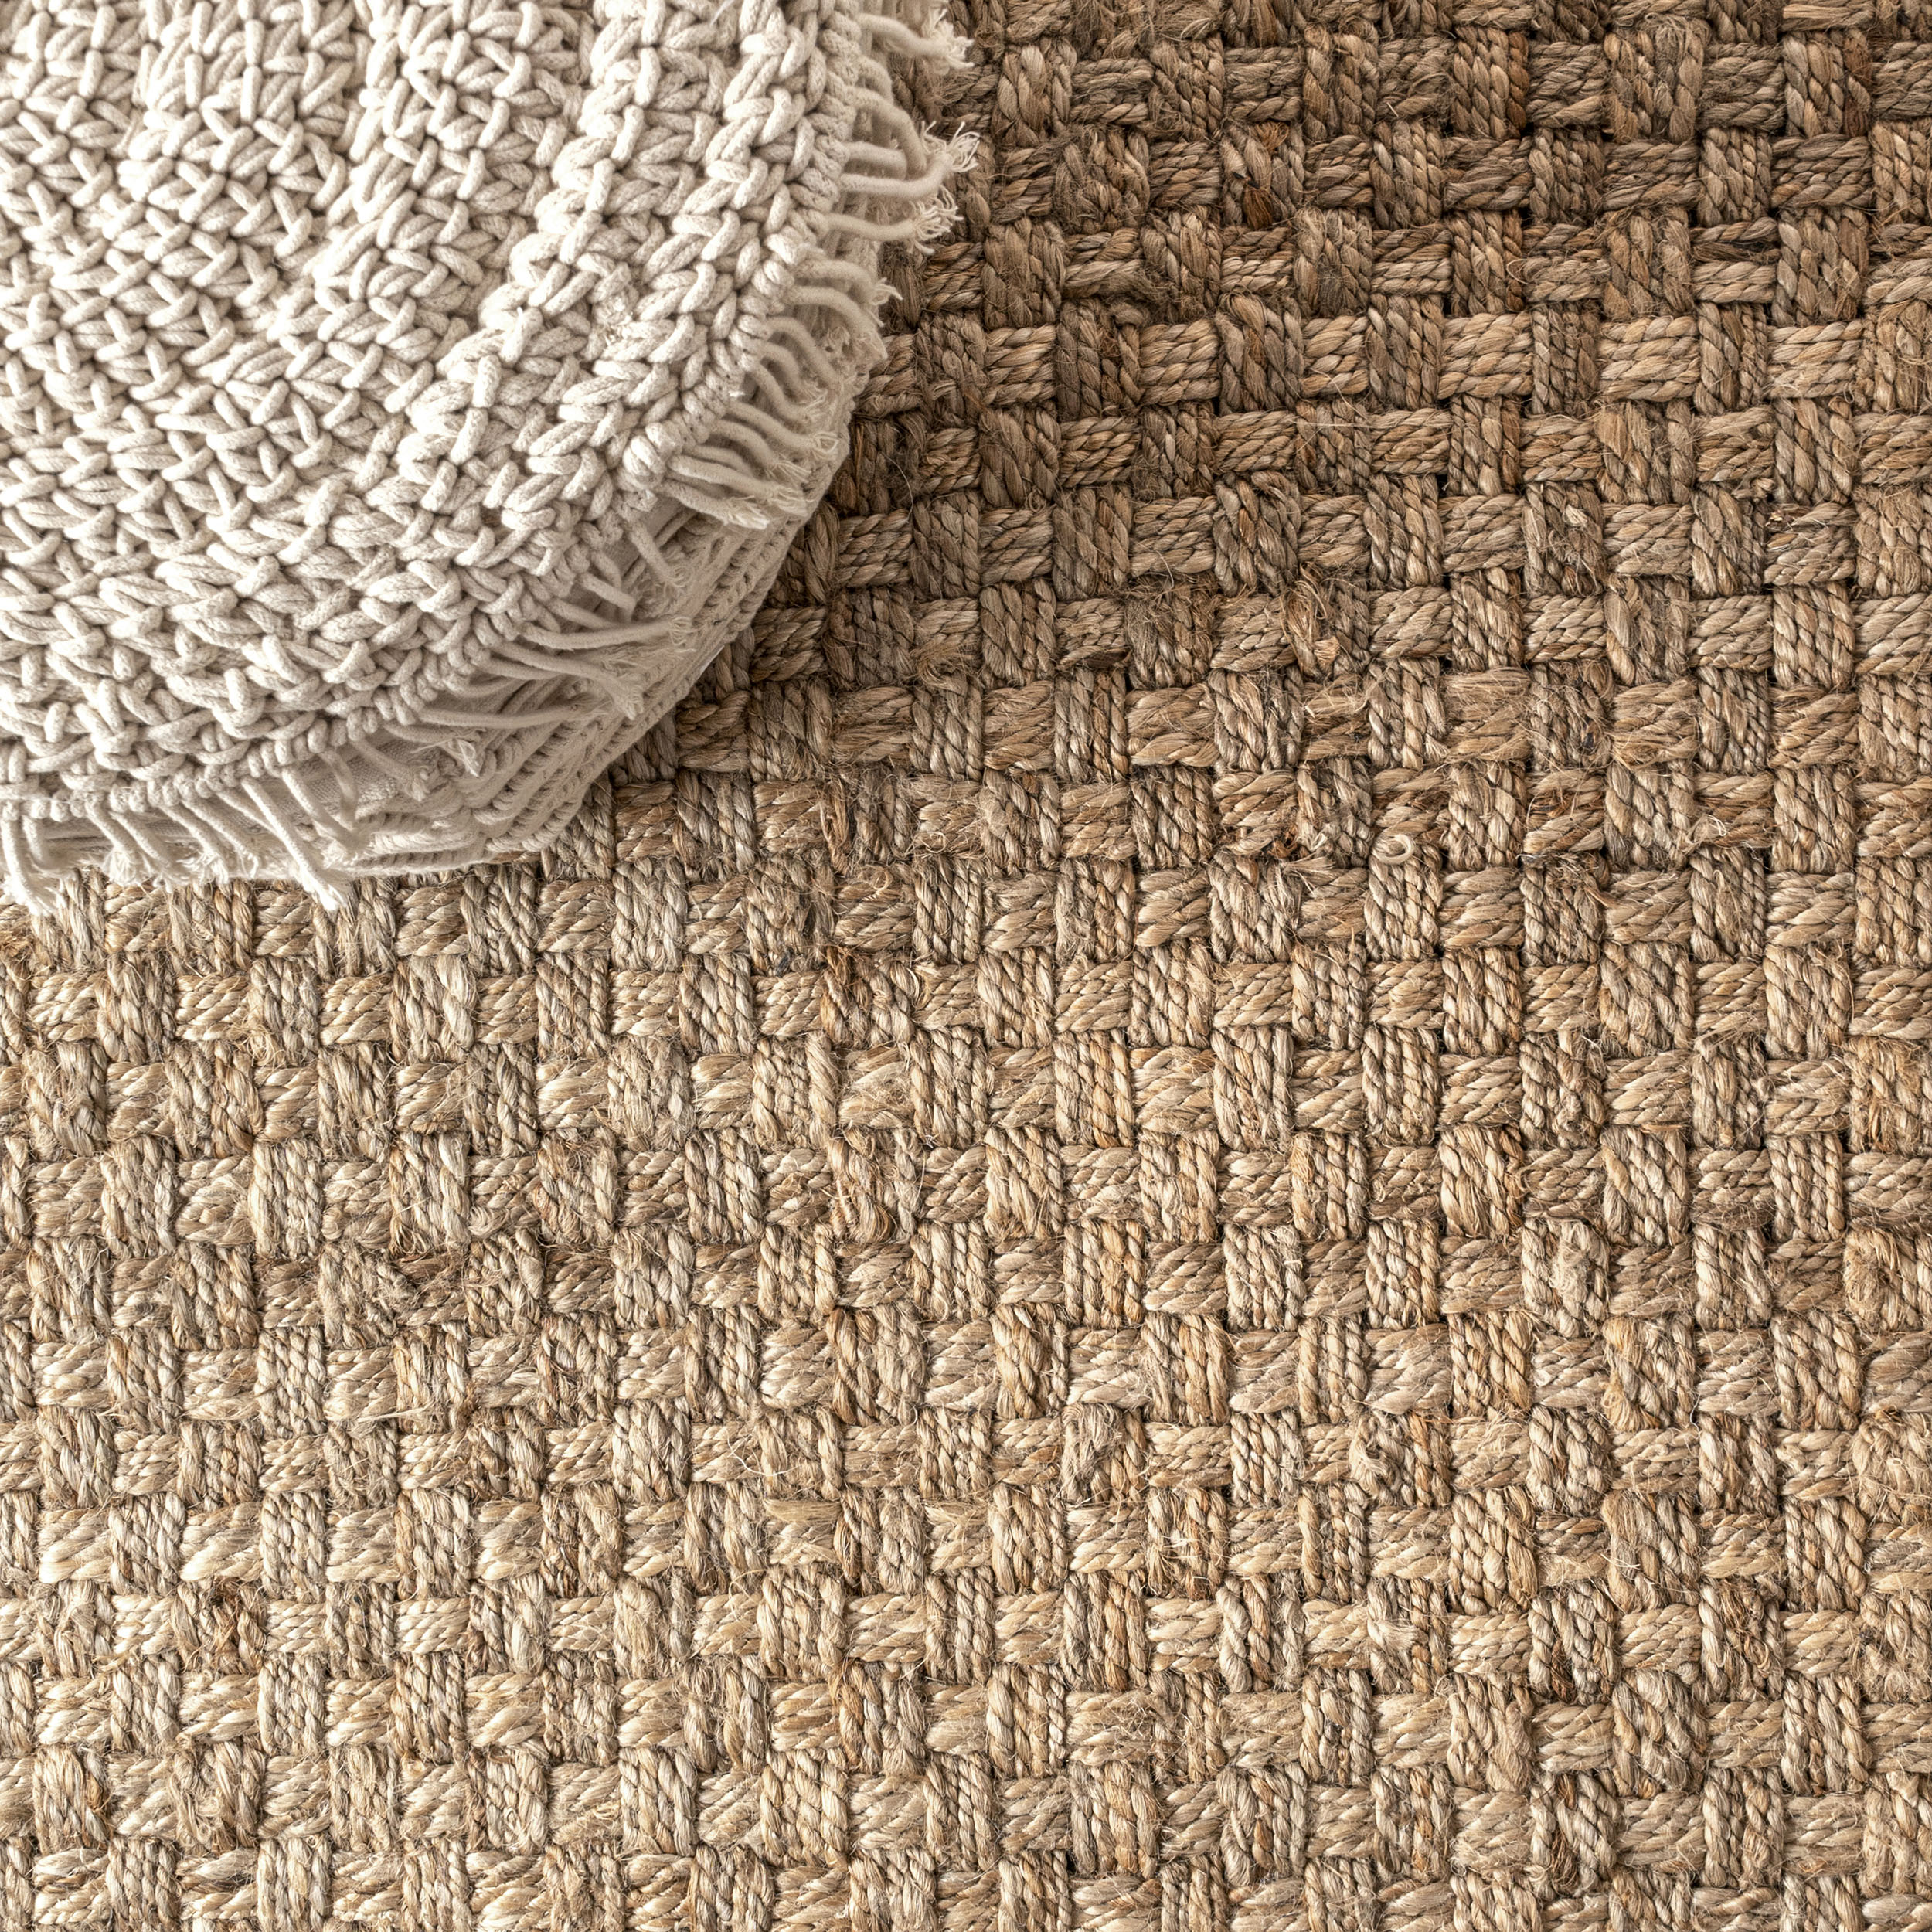 Estera Hand Woven Boucle Chunky Jute Natural 5 ft. x 8 ft. Area Rug